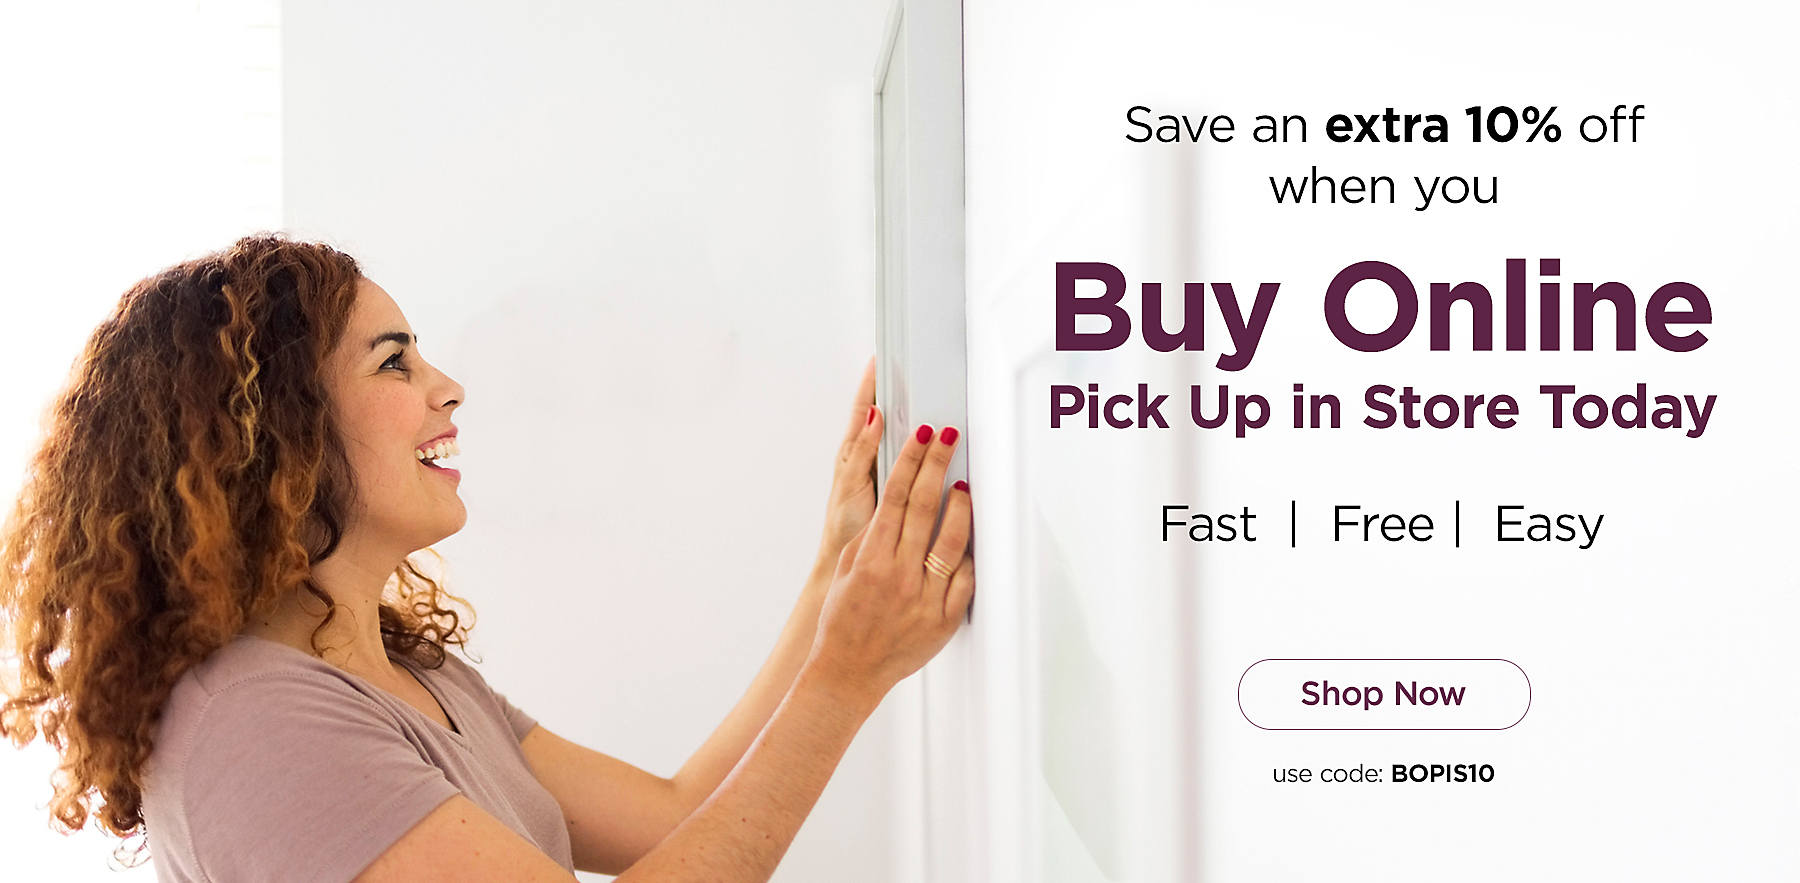 When tomorrrow is too far away. Buy Online Pick Up In Store - Fast, Easy, Free